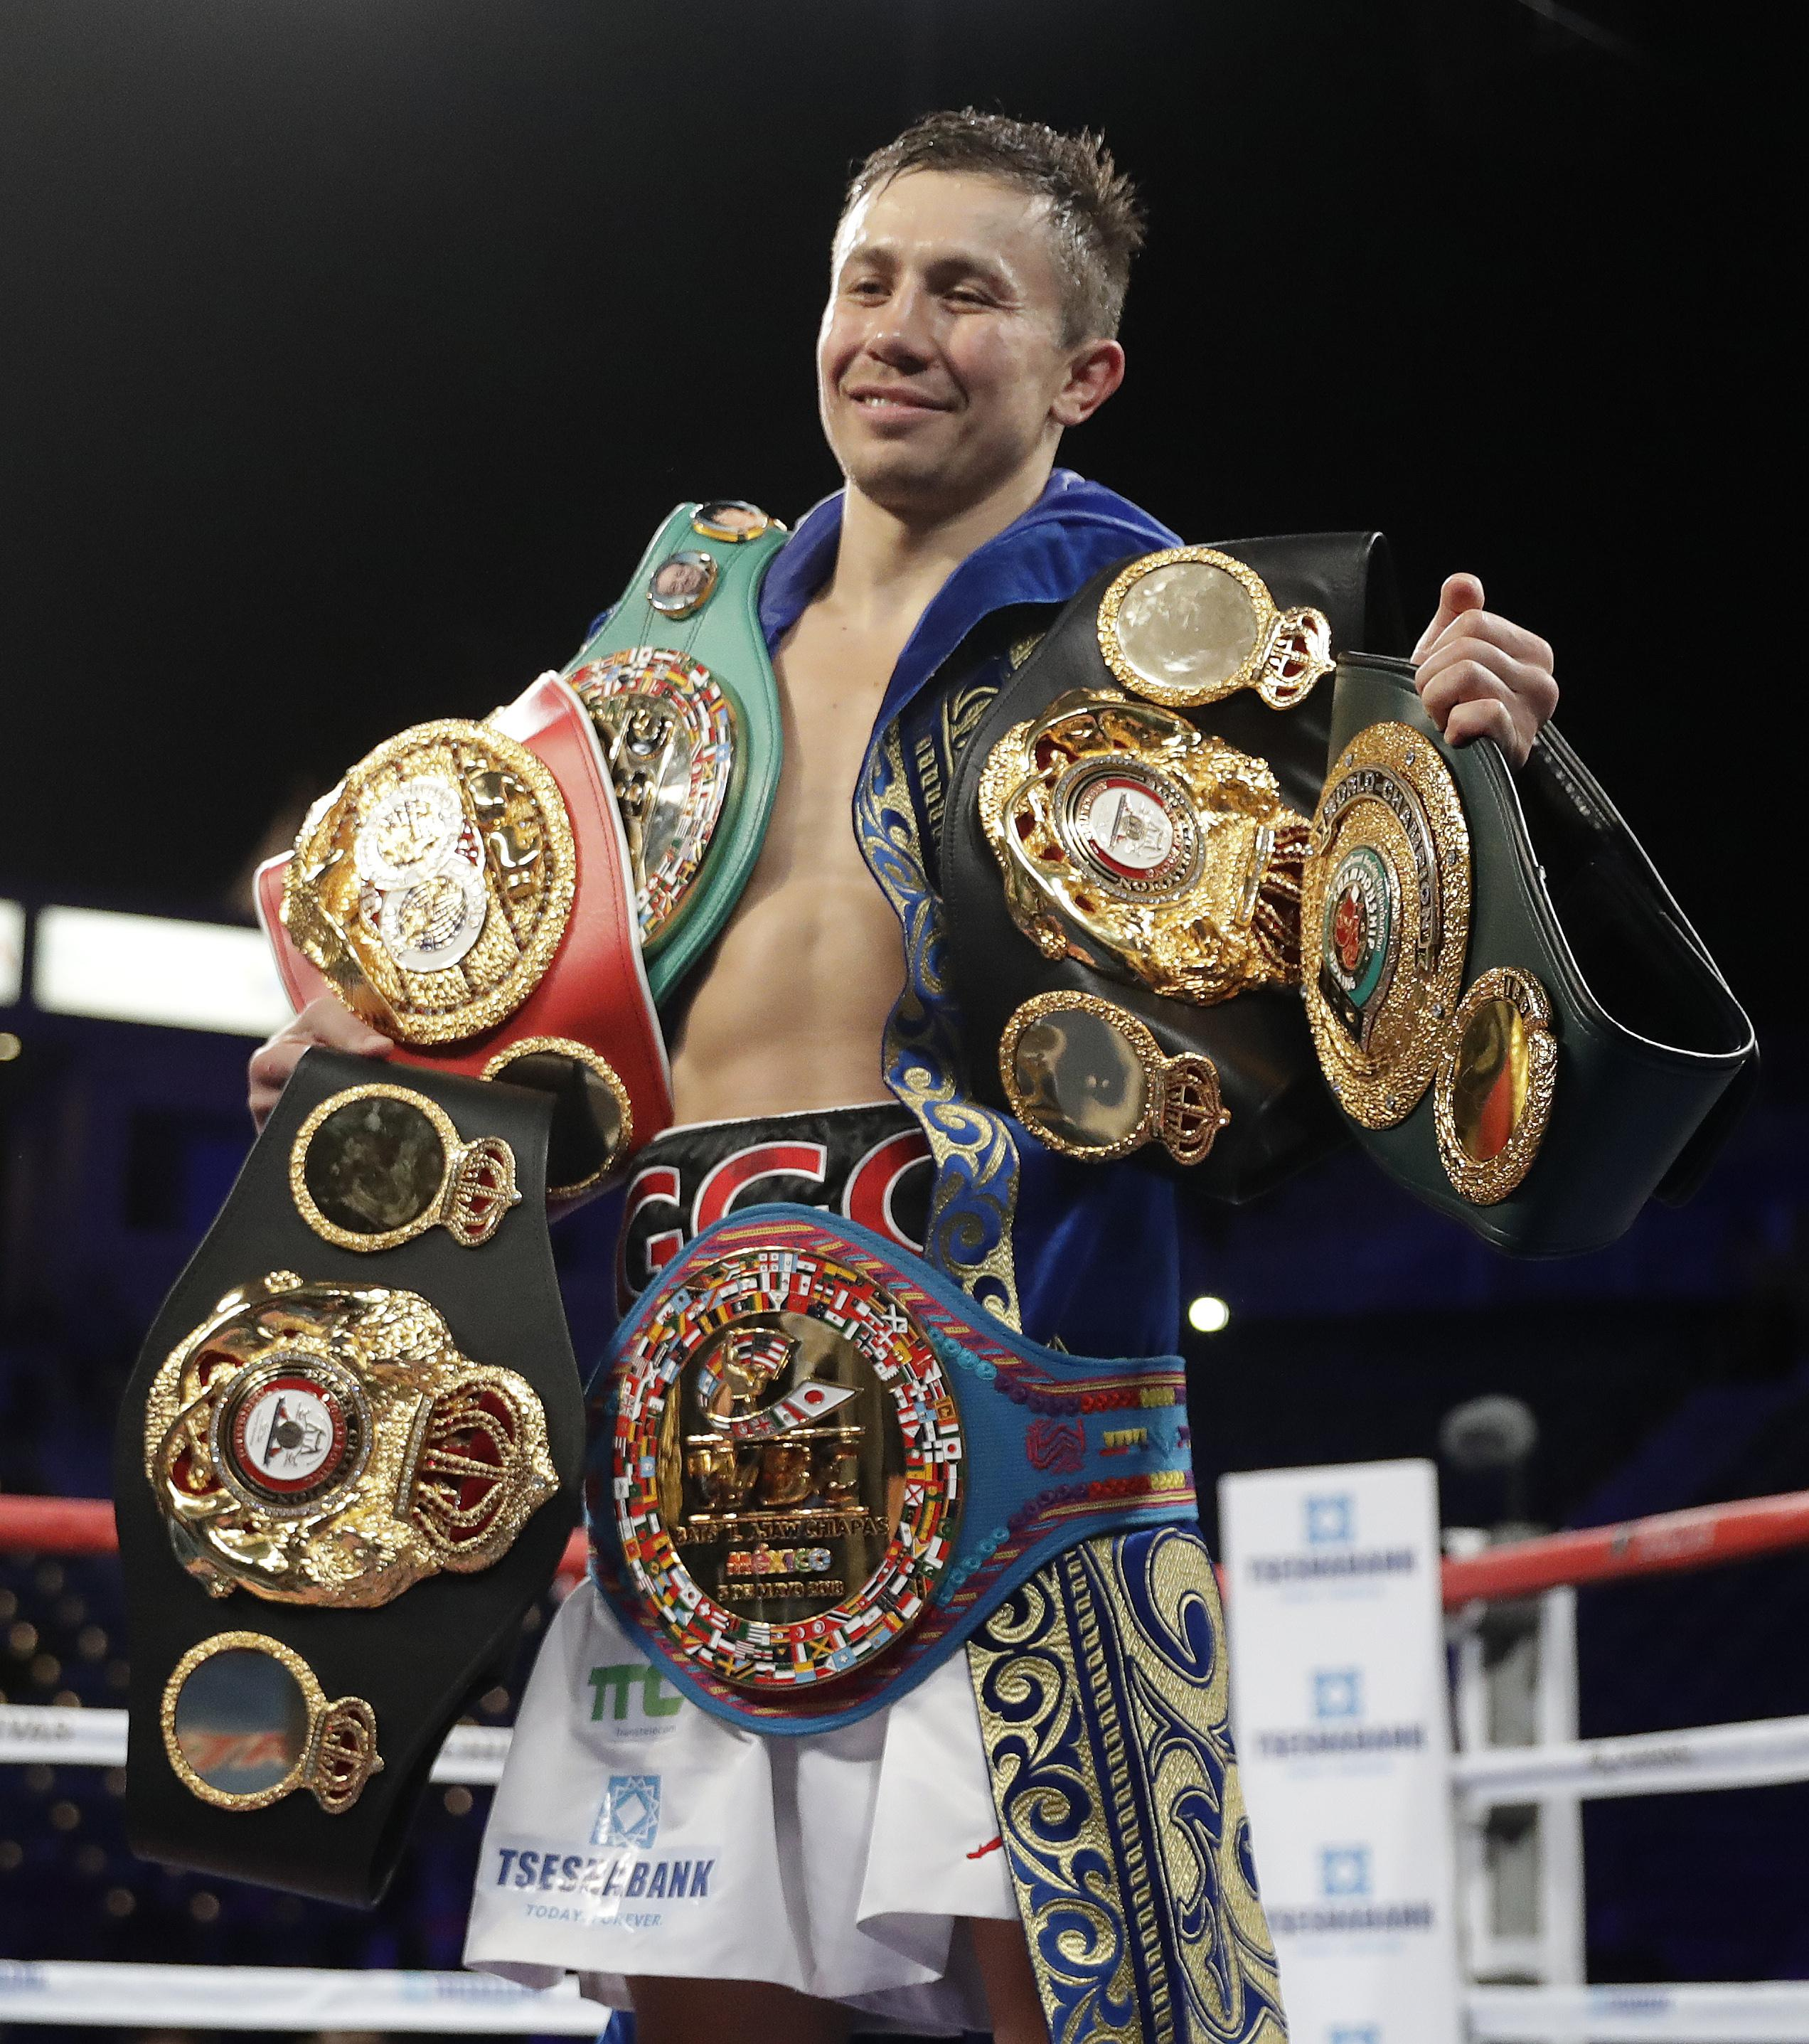 Gennady Golovkin is undefeated and has one draw on his record, which came against Canelo